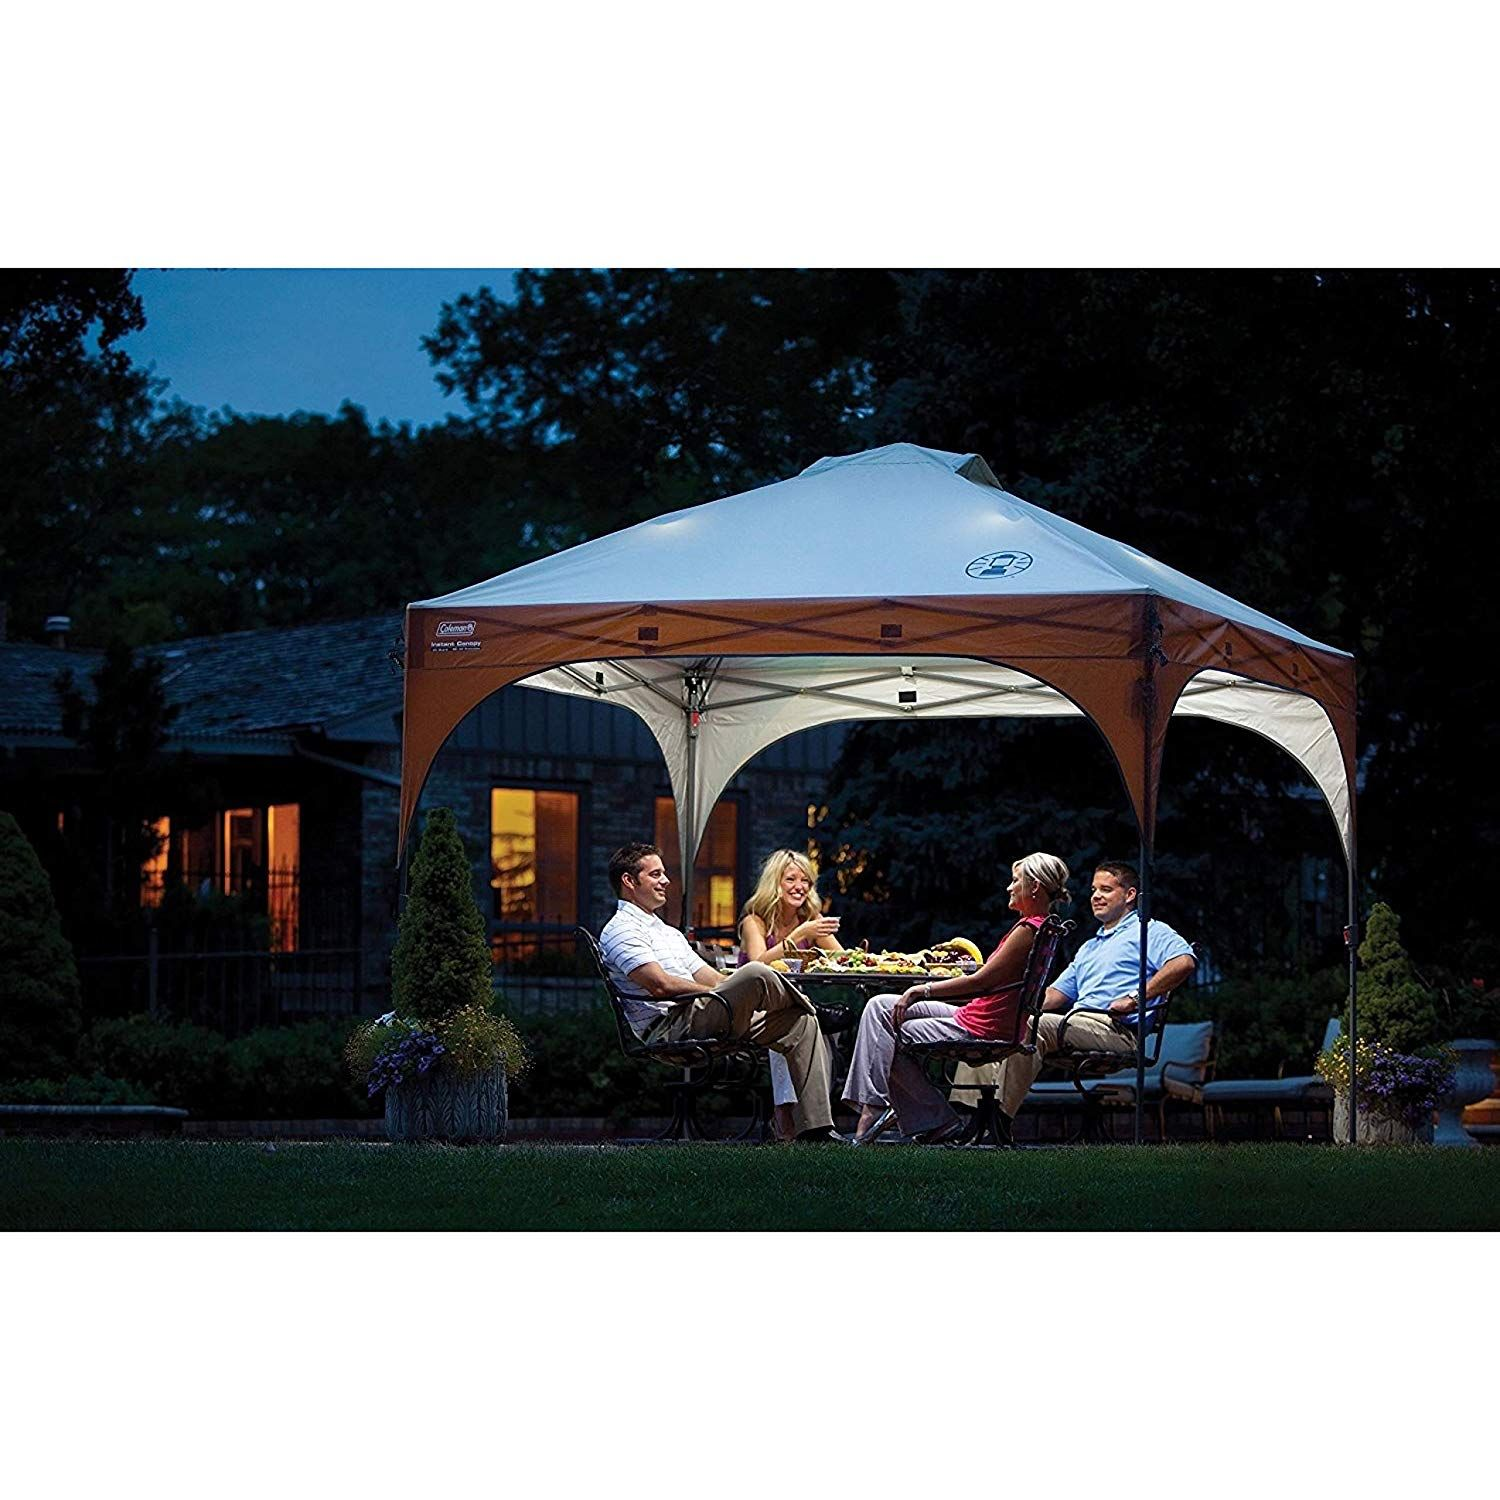 Amazon Com Coleman Instant Pop Up Canopy Tent And Sun Shelter With Led Lighting 10 X 10 Feet Sports Outdoors Canopy Outdoor Instant Canopy Gazebo